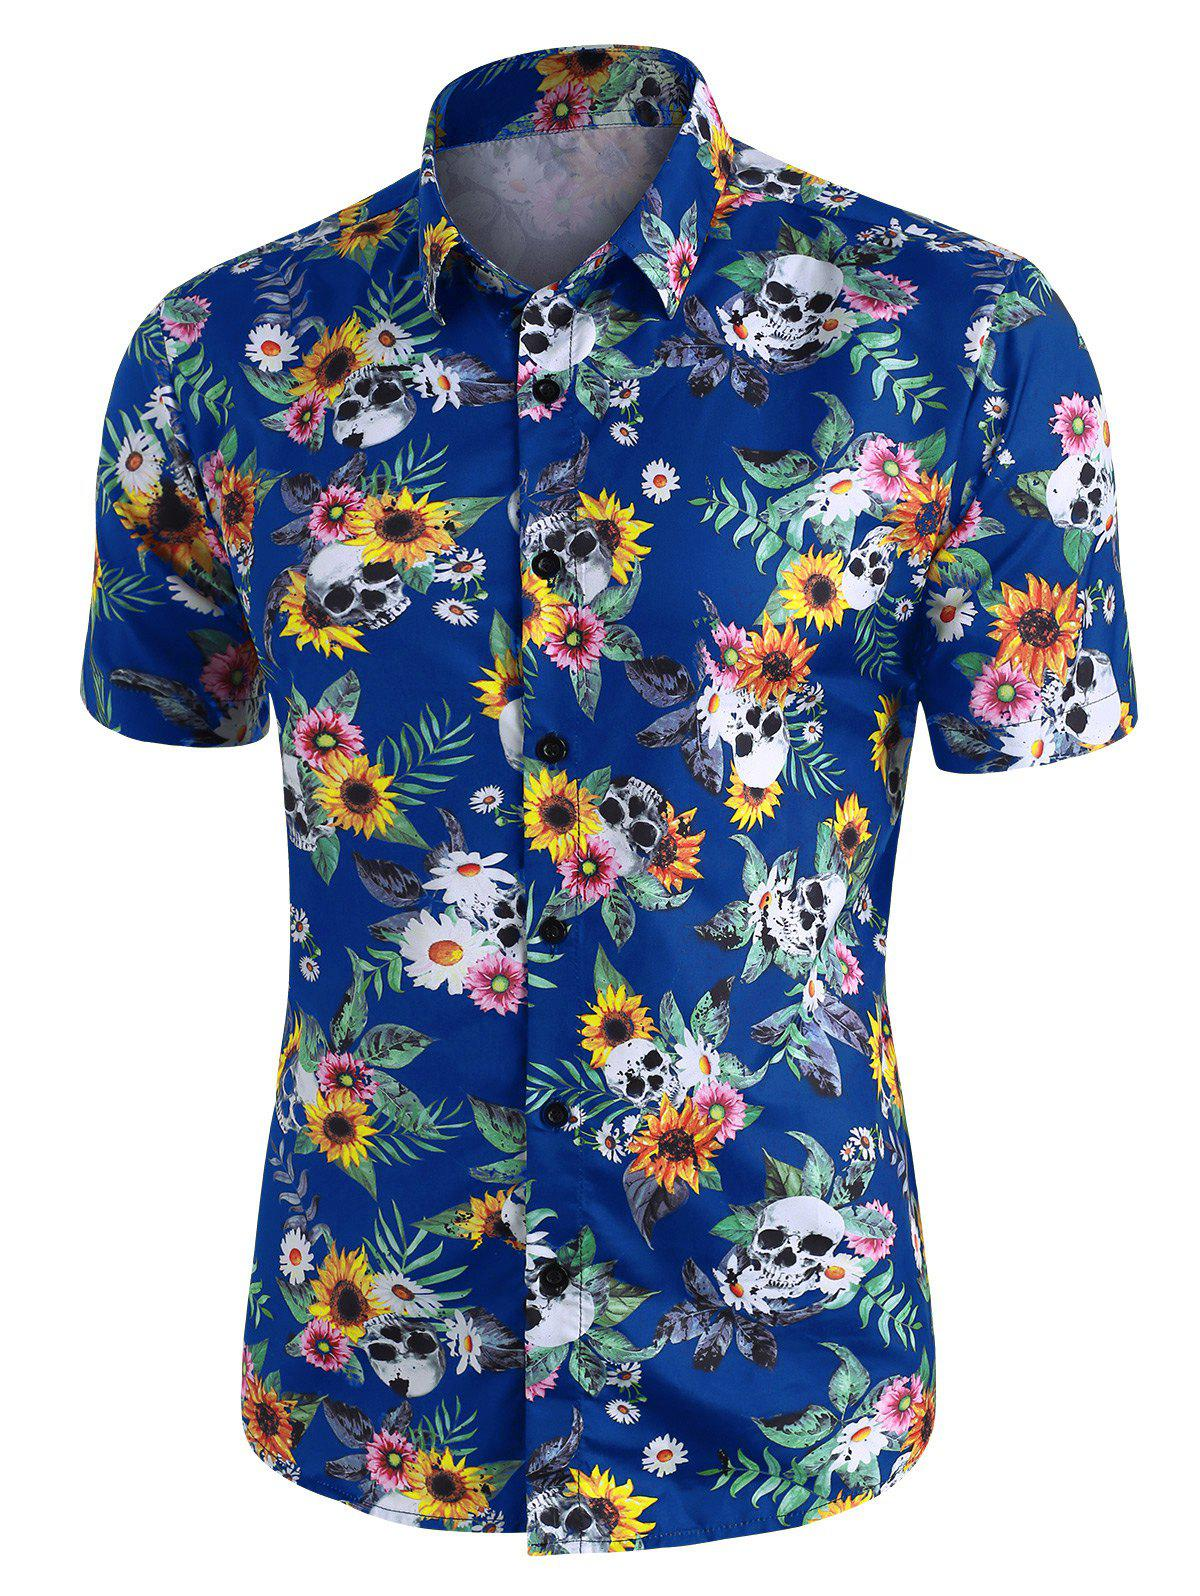 Store Skull Ditsy Floral Button Up Casual Shirt